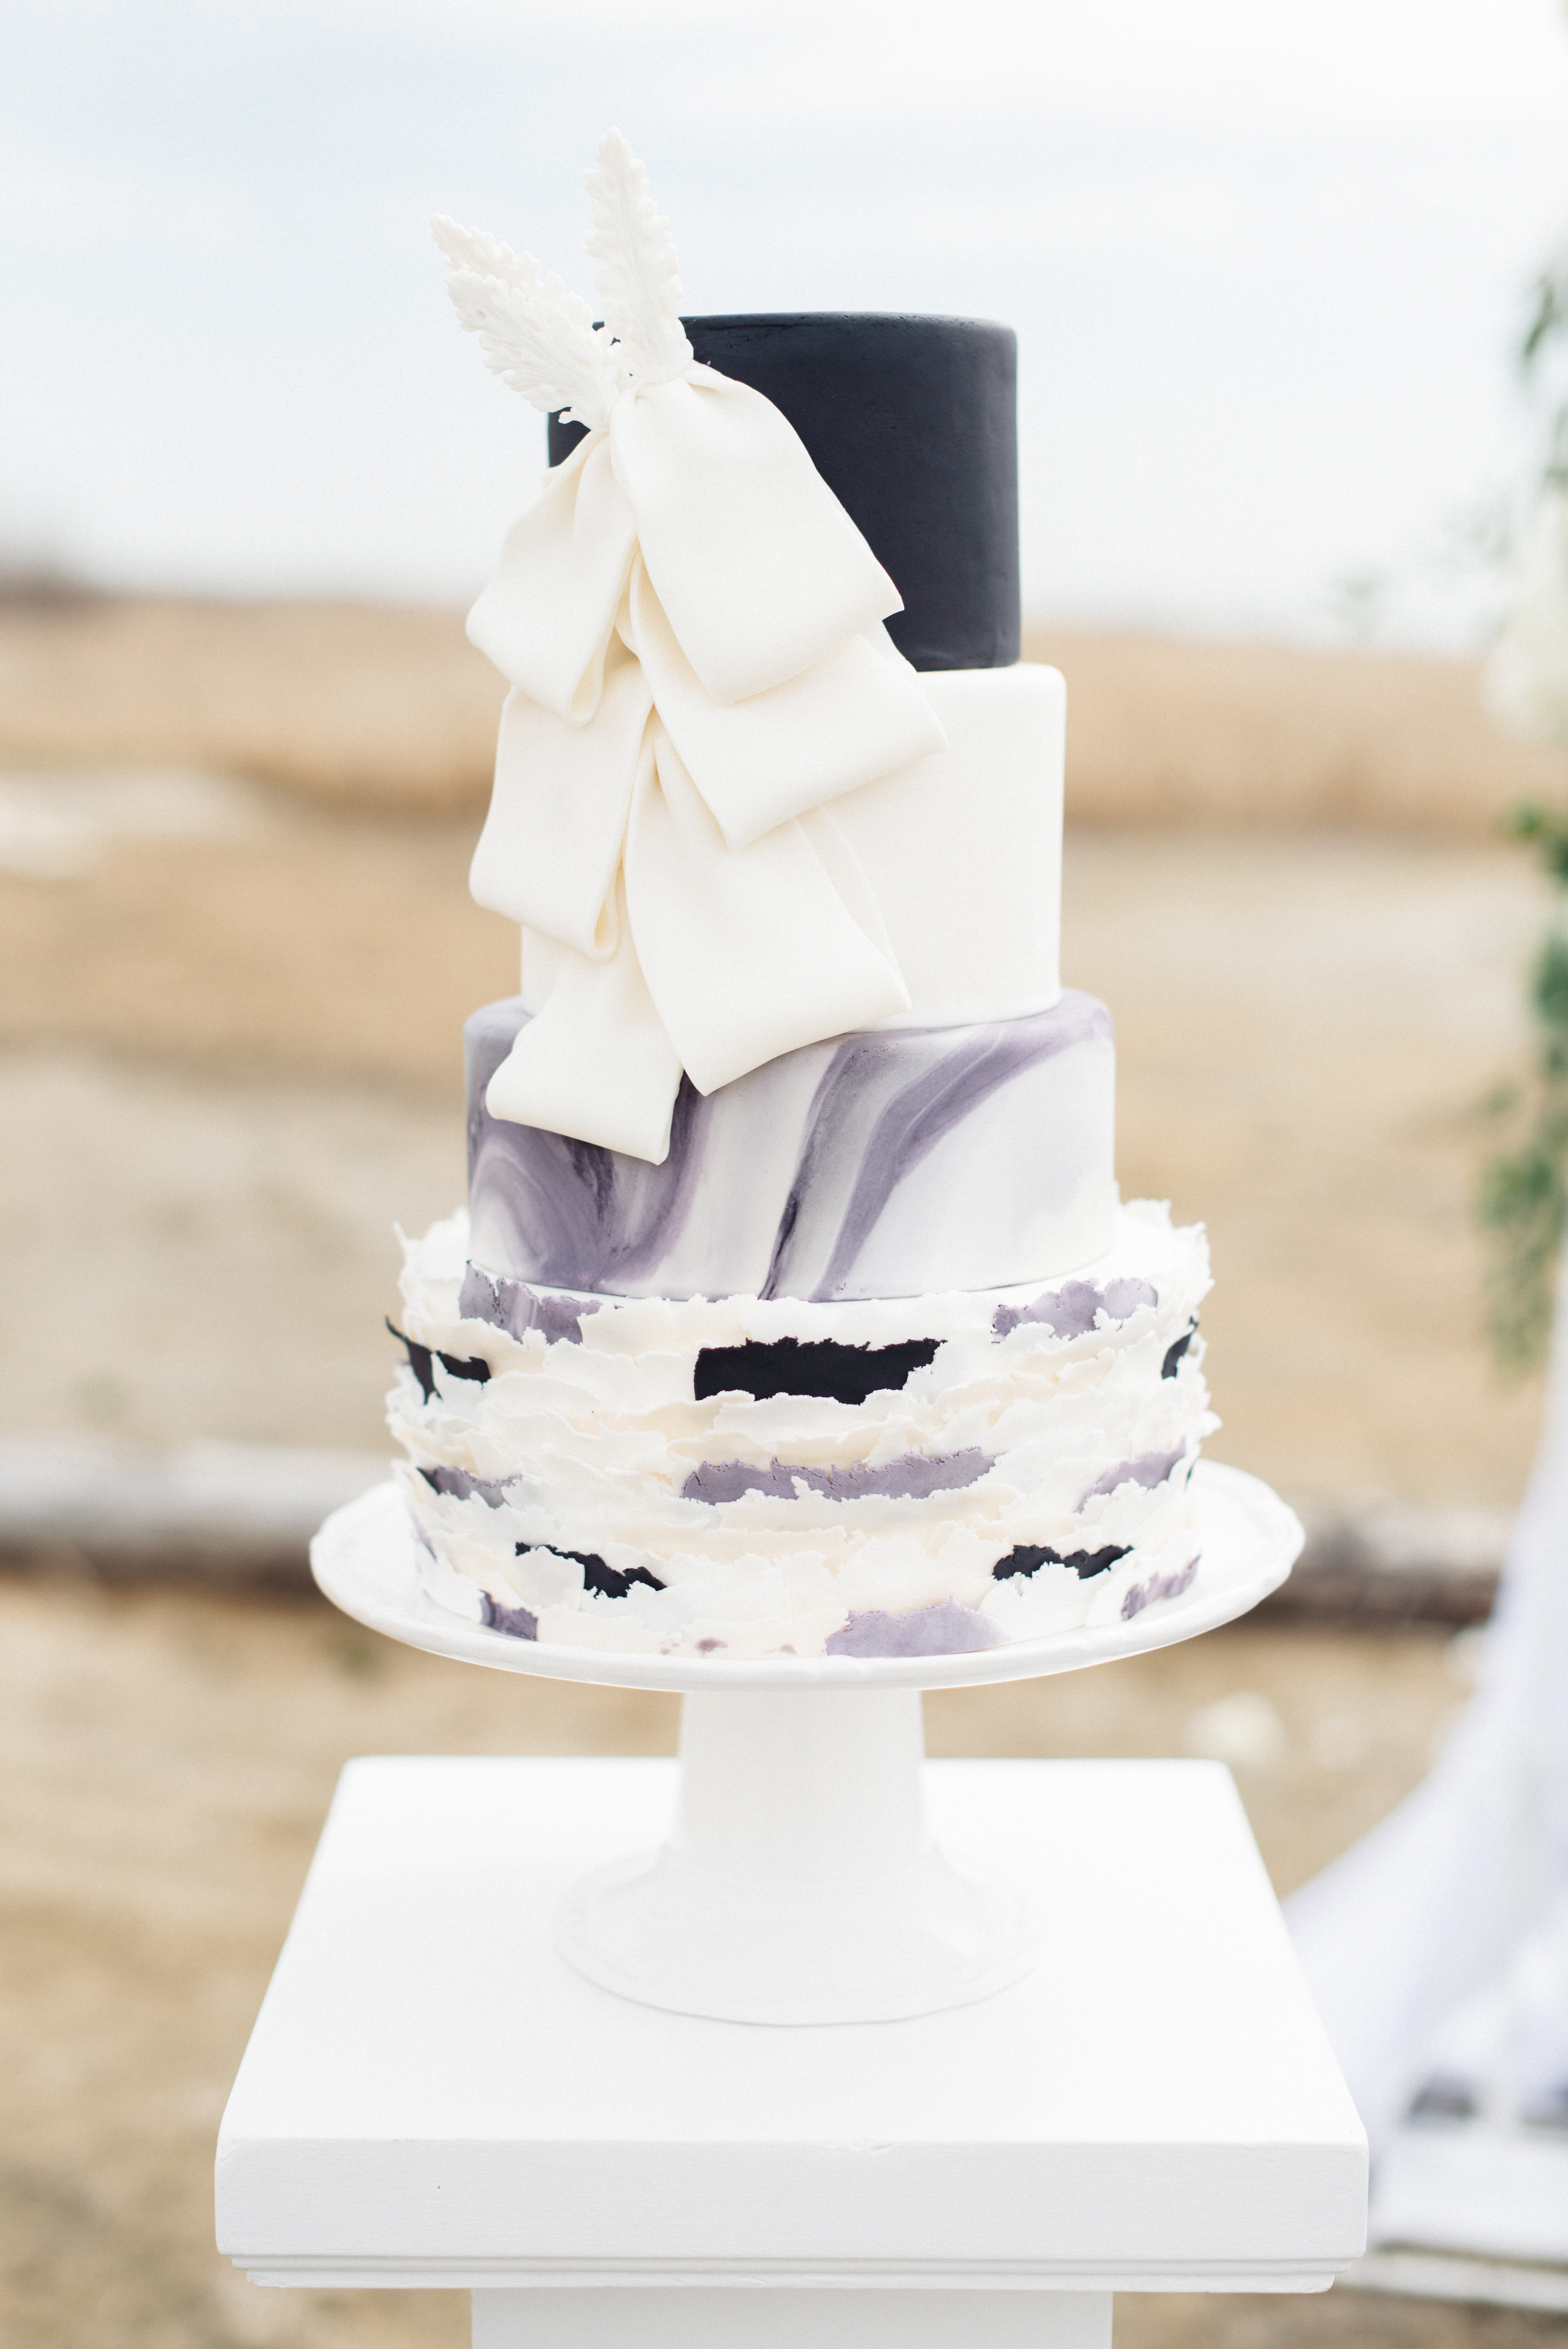 Black and white marbled wedding cake with sugar bow